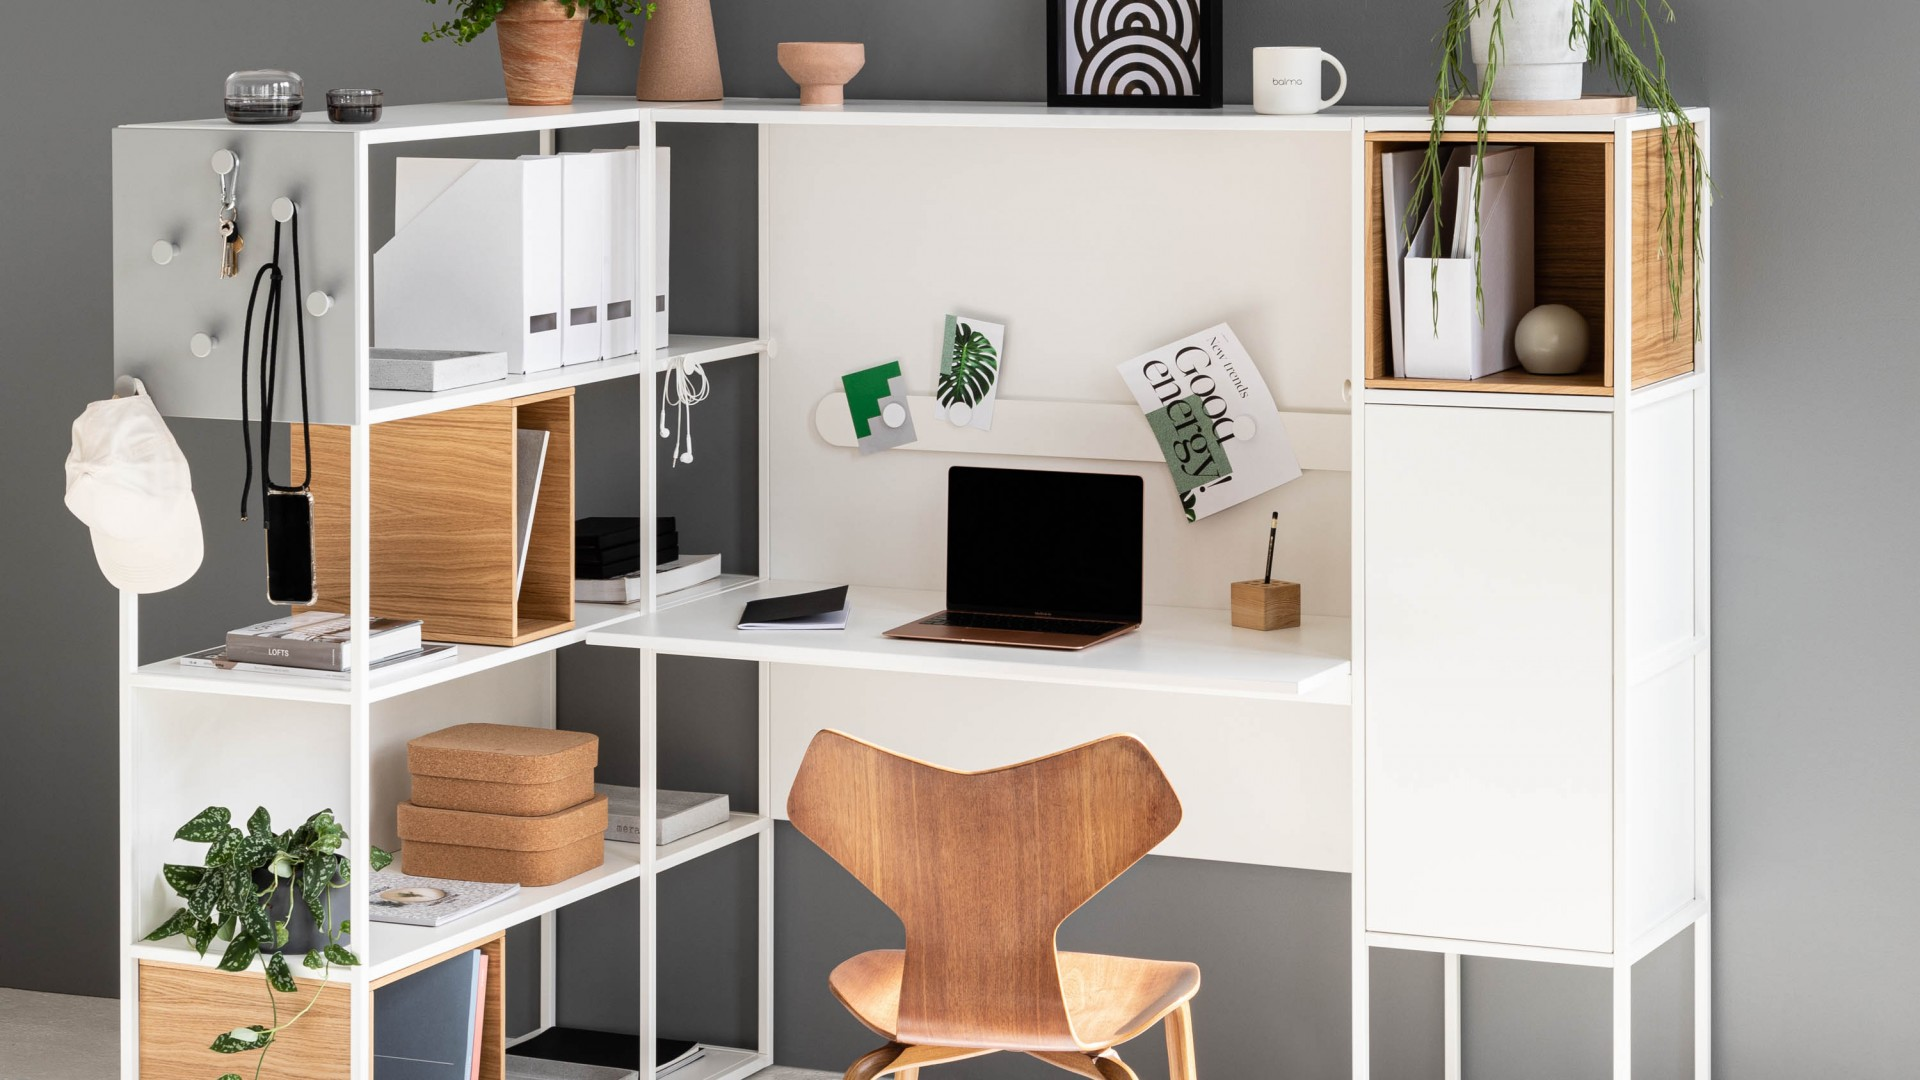 You can work the way you like it with our collection of Balma STEPPS modular shelving units!